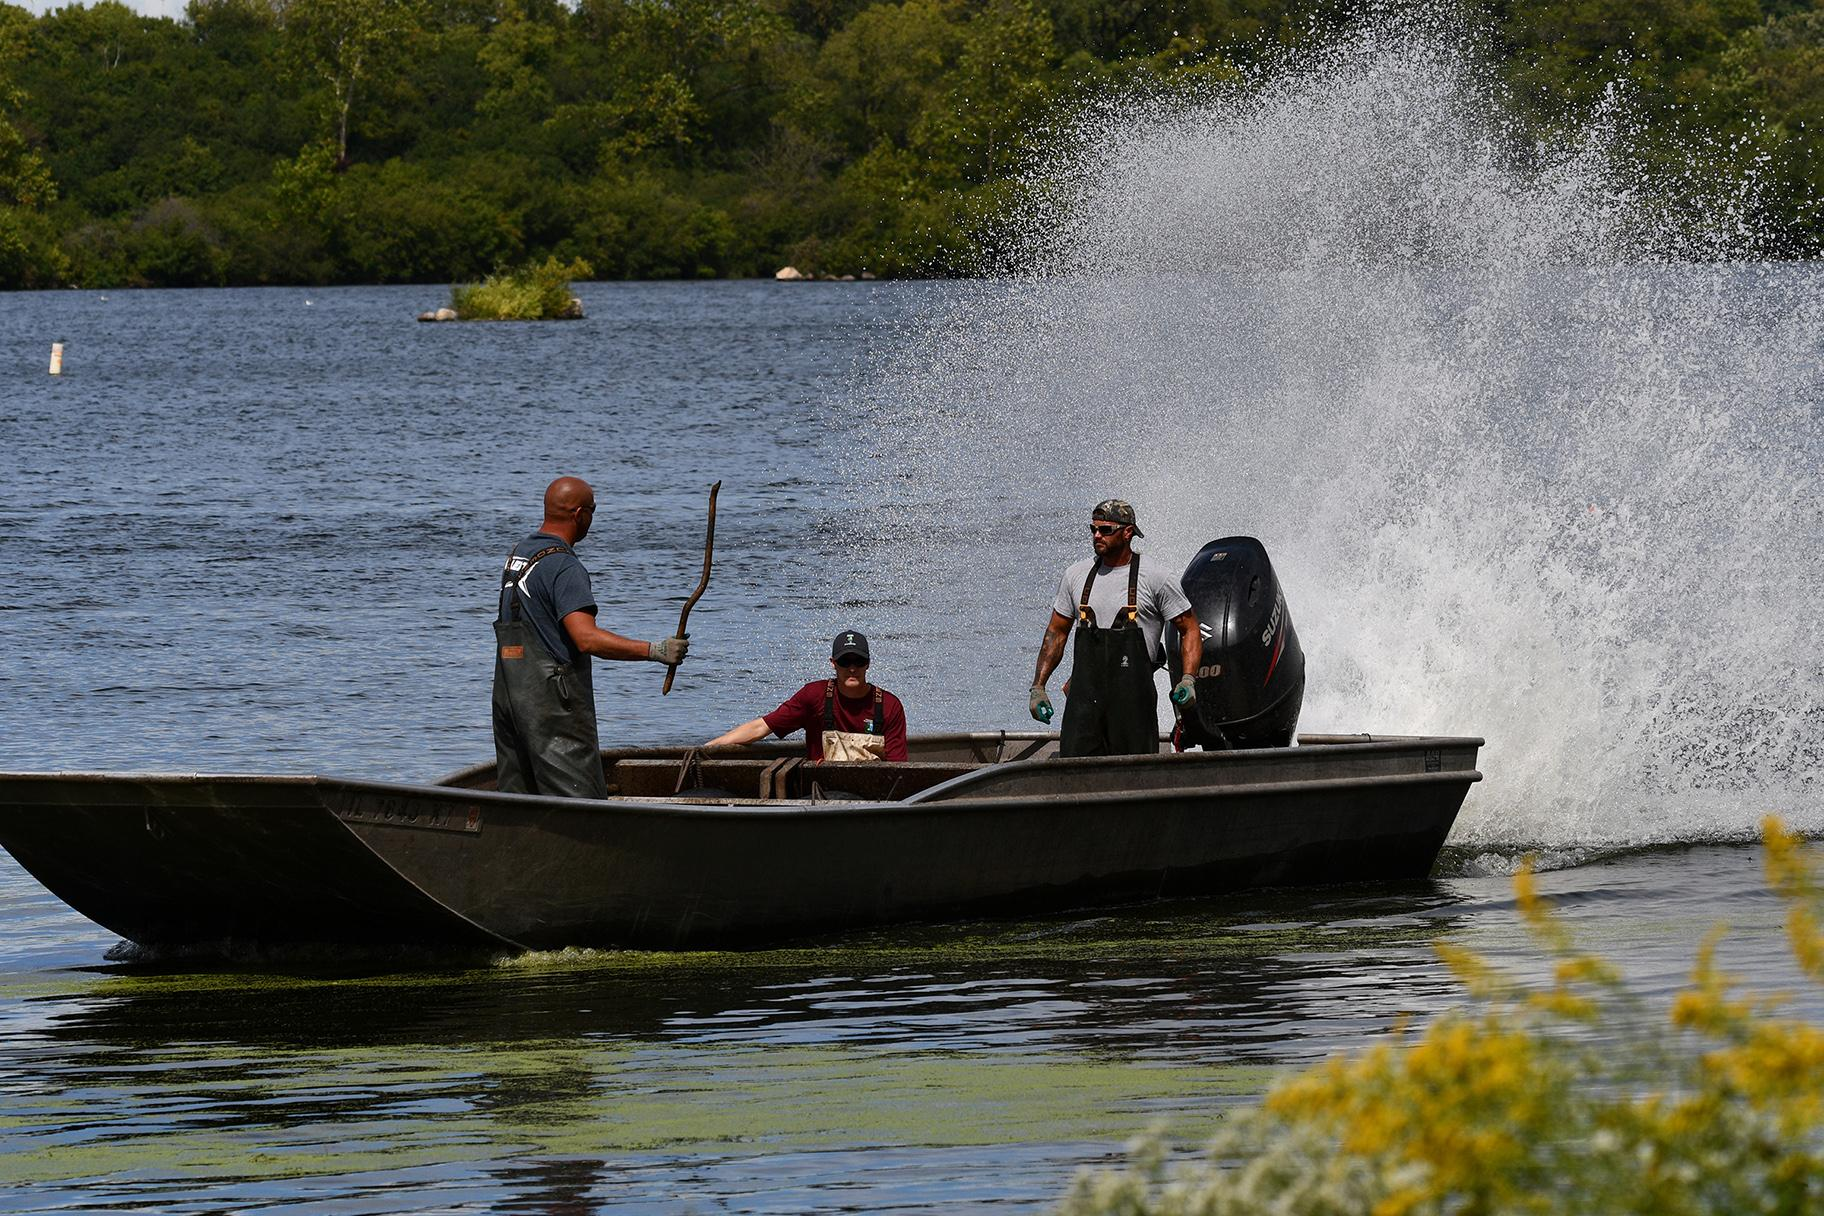 Crews with the Illinois Department of Natural Resources harvest Asian carp at the Rock Run Rookery Preserve in Joliet. (Chad Merda / Forest Preserve District of Will County)